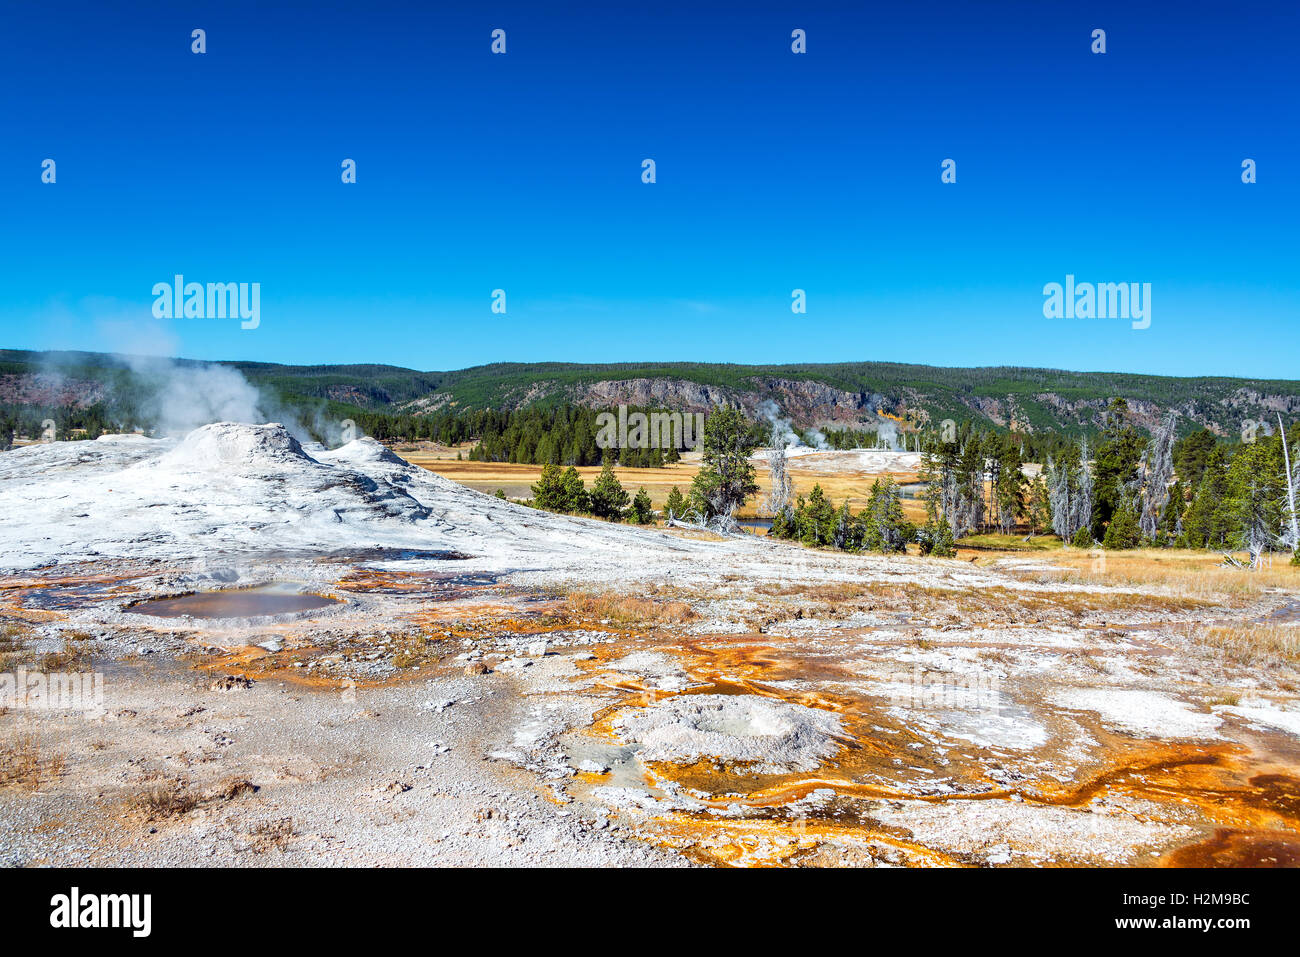 Geyser and landscape the Upper Geyser Basin in Yellowstone National Park - Stock Image